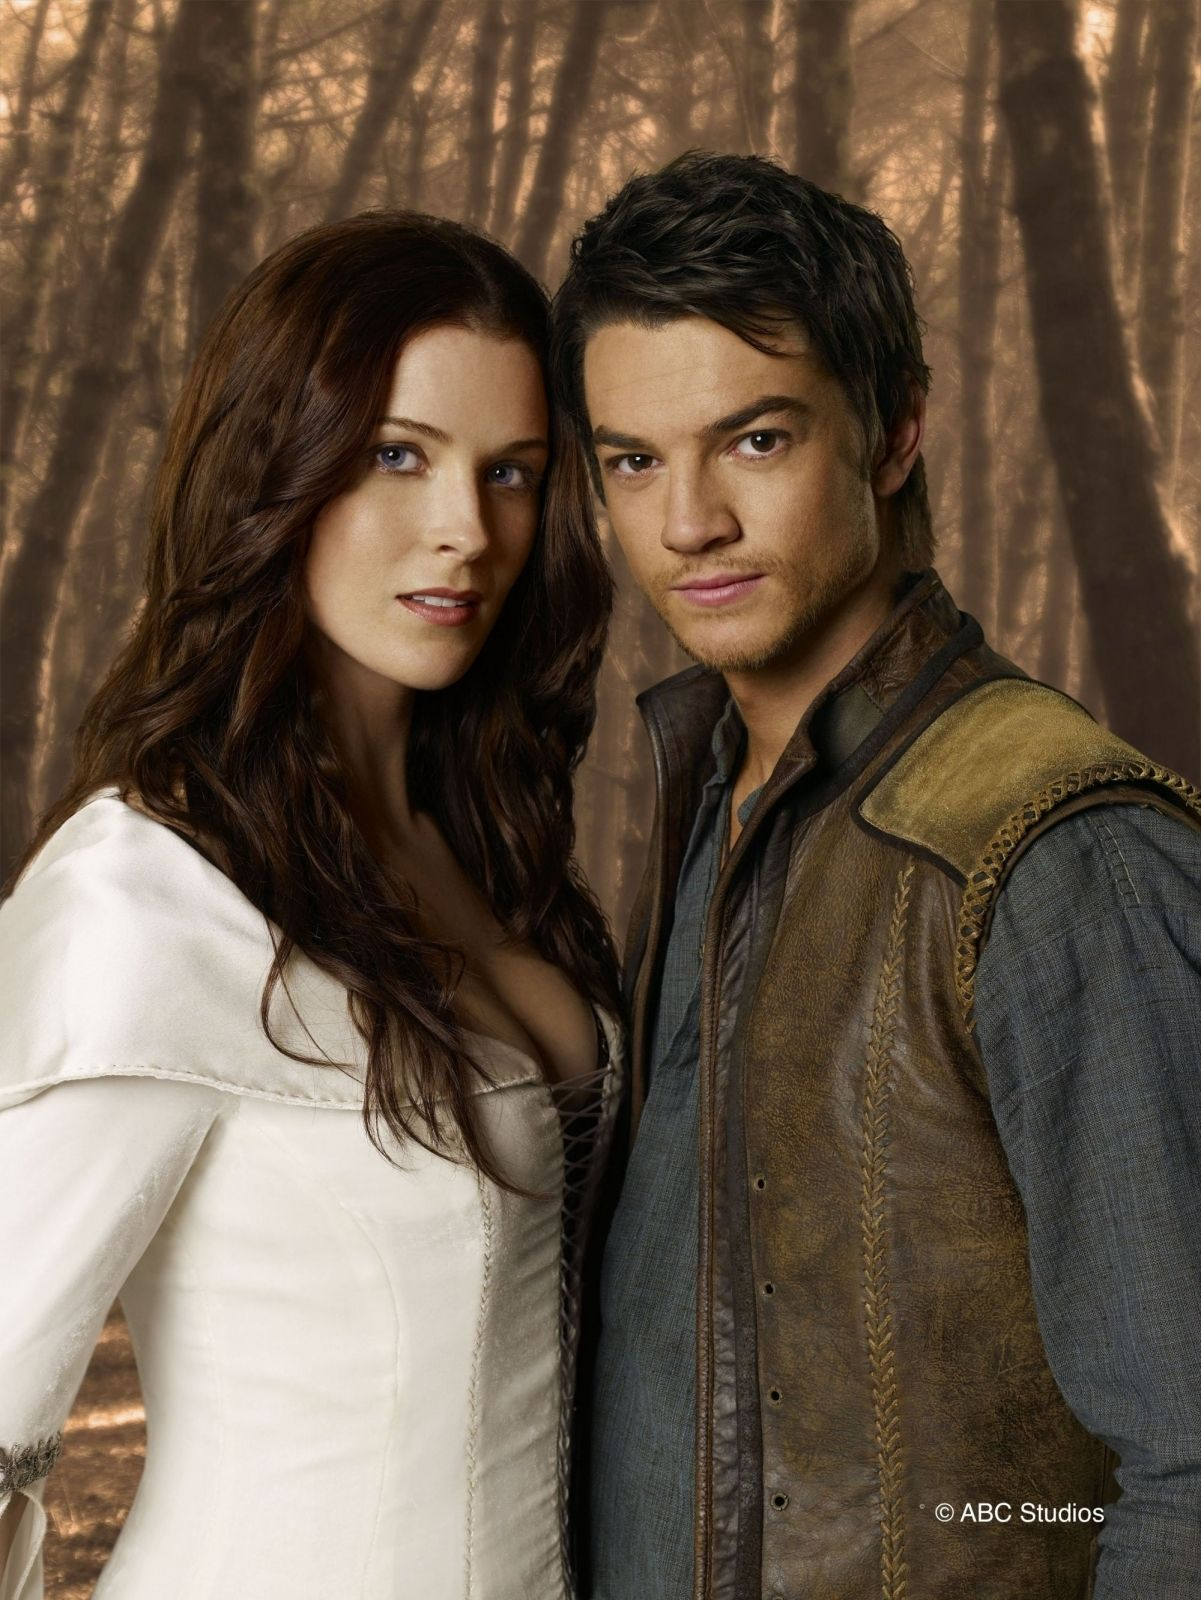 Legend of the Seeker - Richard & Kahlan  One of my FAV shows...try it if you haven't seen it!!!